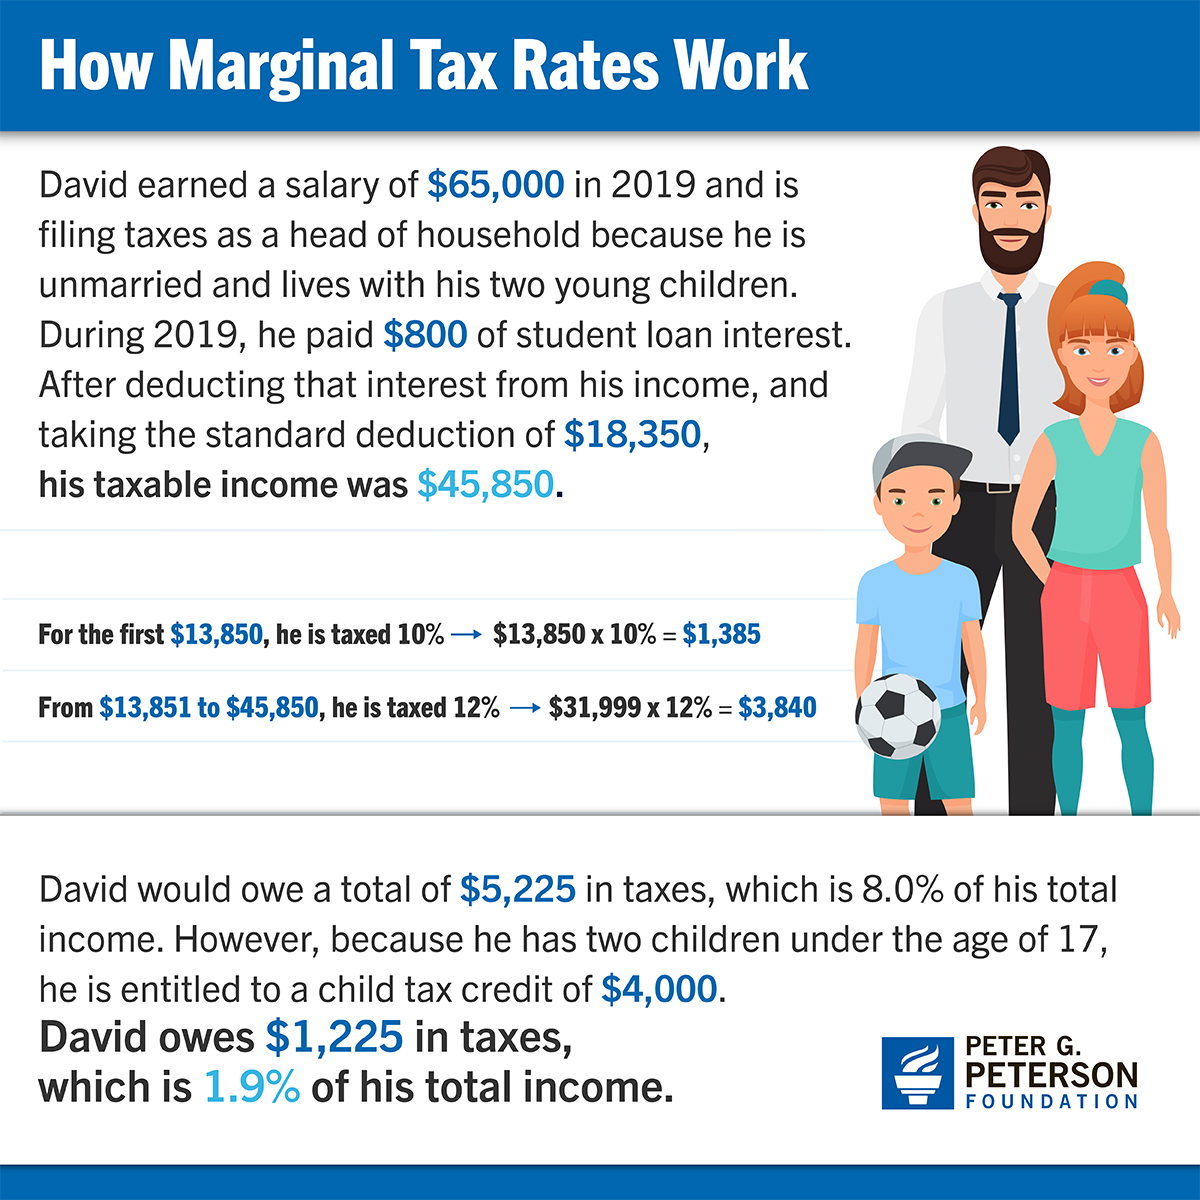 Four Simple Scenarios That Show How Marginal Rates and Tax Breaks Affect What People Actually Pay